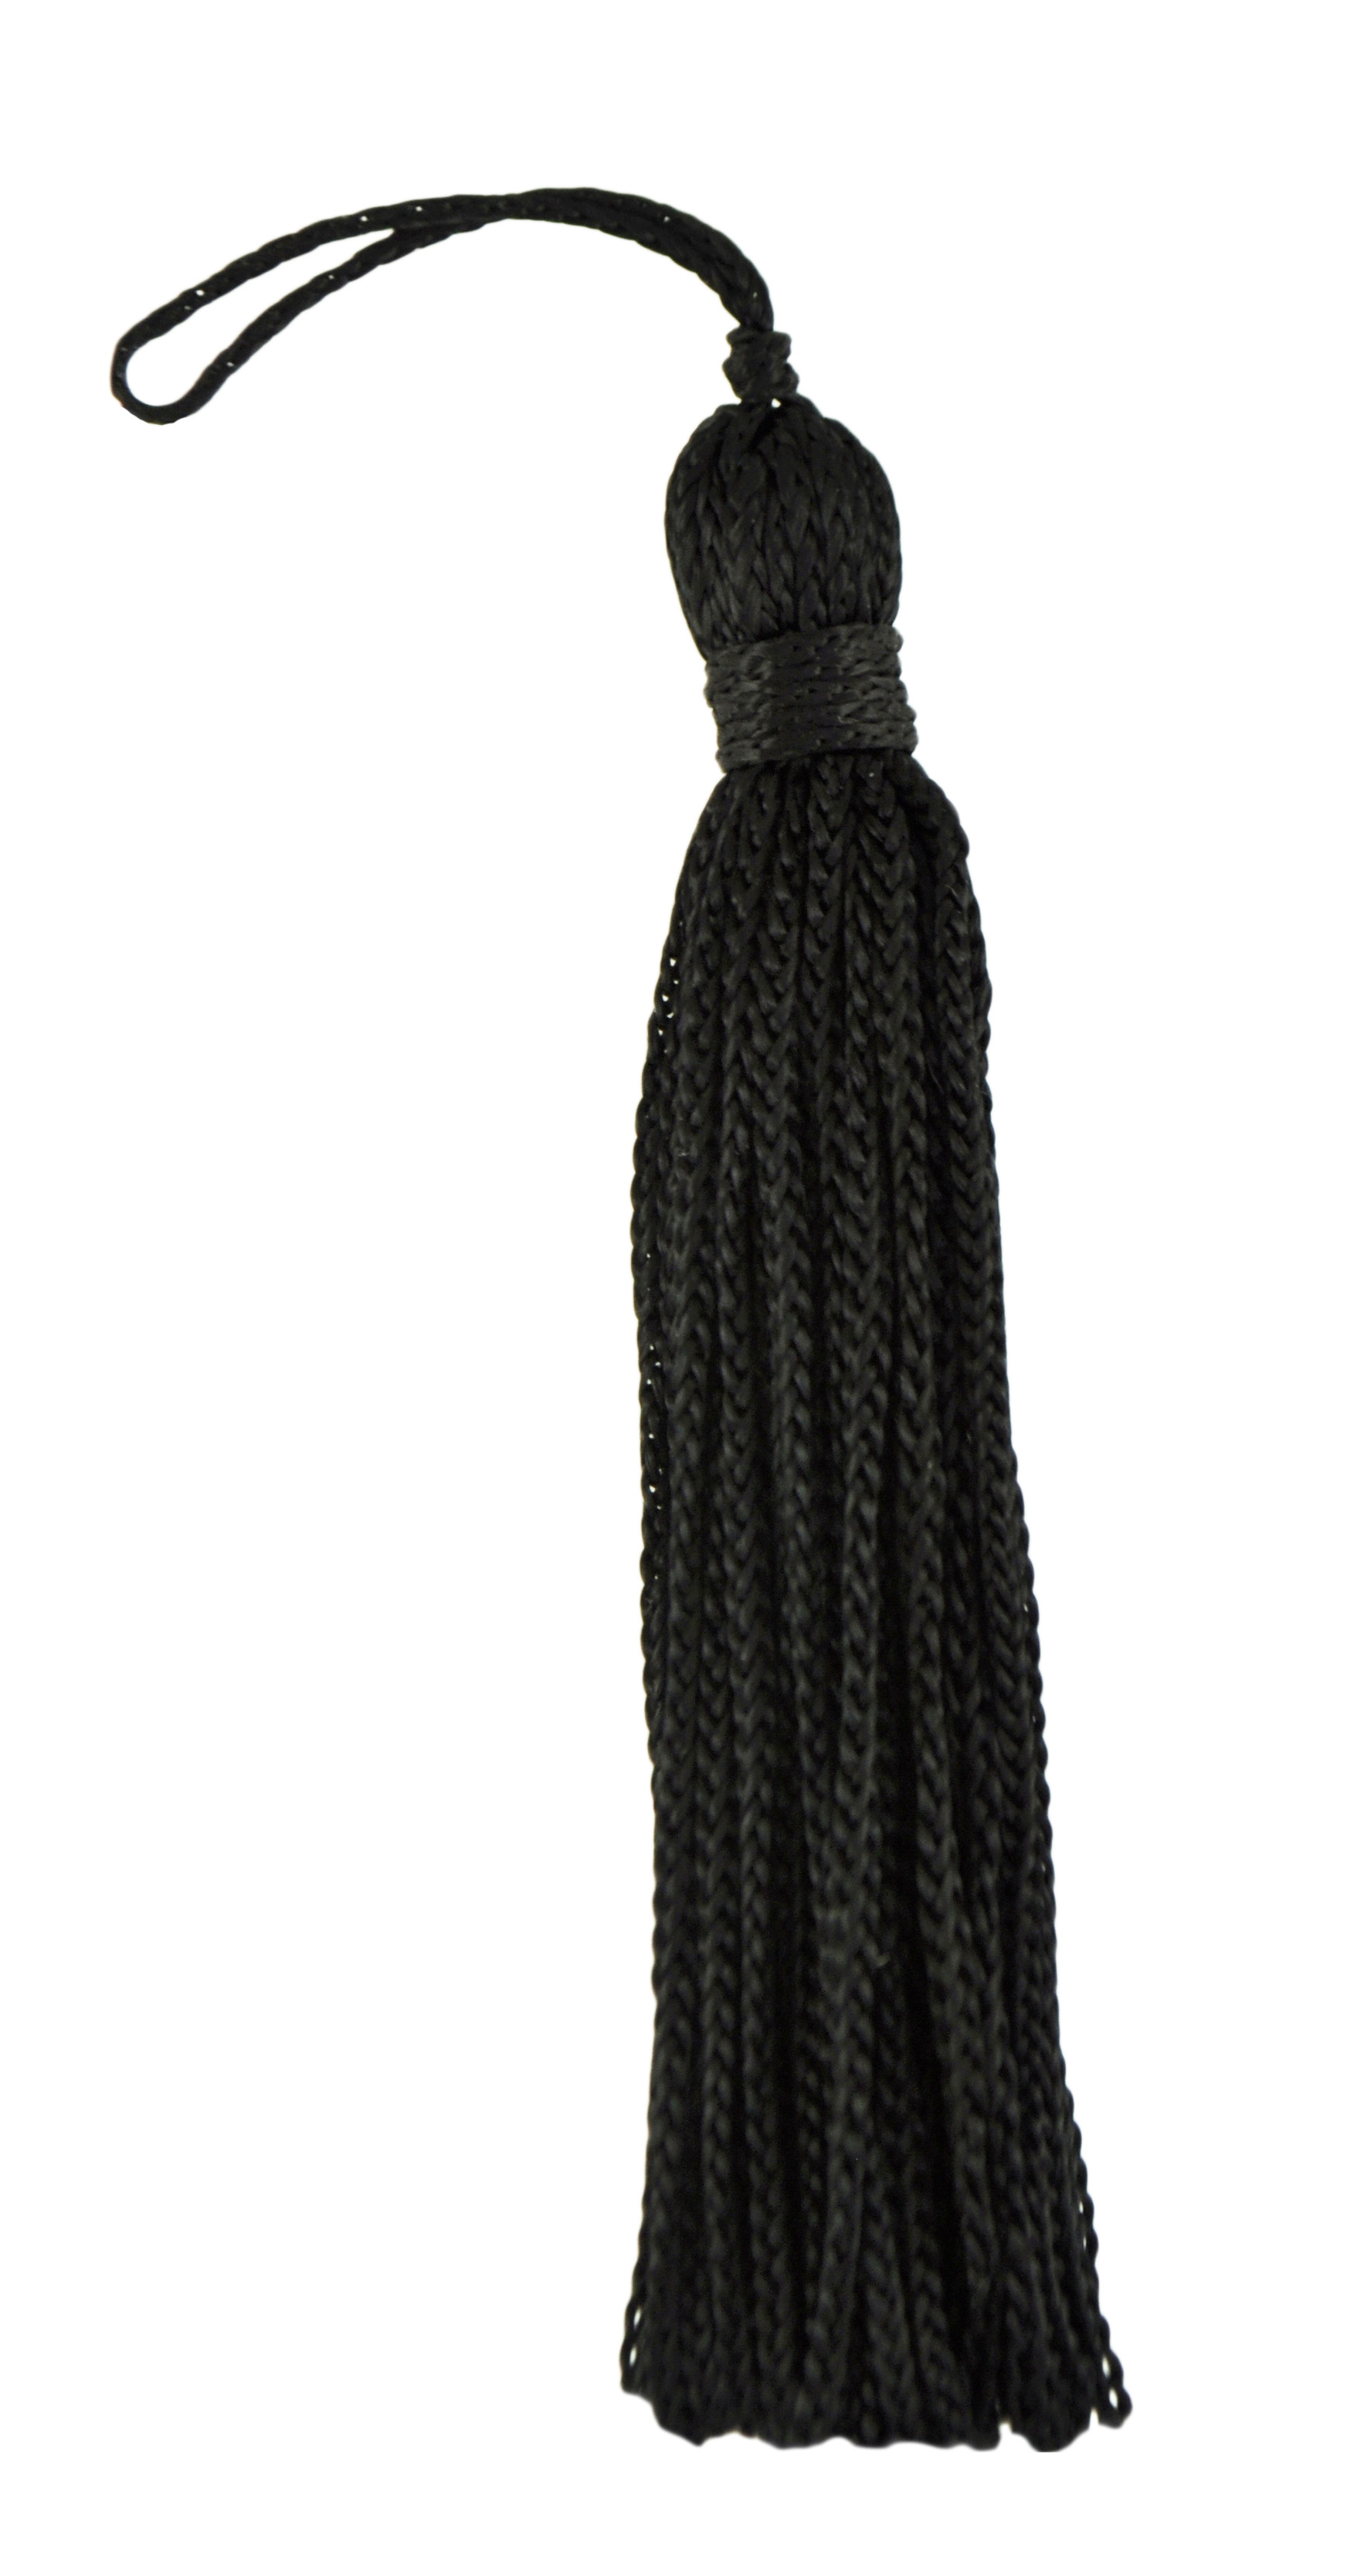 DecoPro Set of 10 Black Chainette Tassel, 3 Inch Long with 1 Inch Loop, Basic Trim Collection Style# RT03 Color: K9 at Sears.com